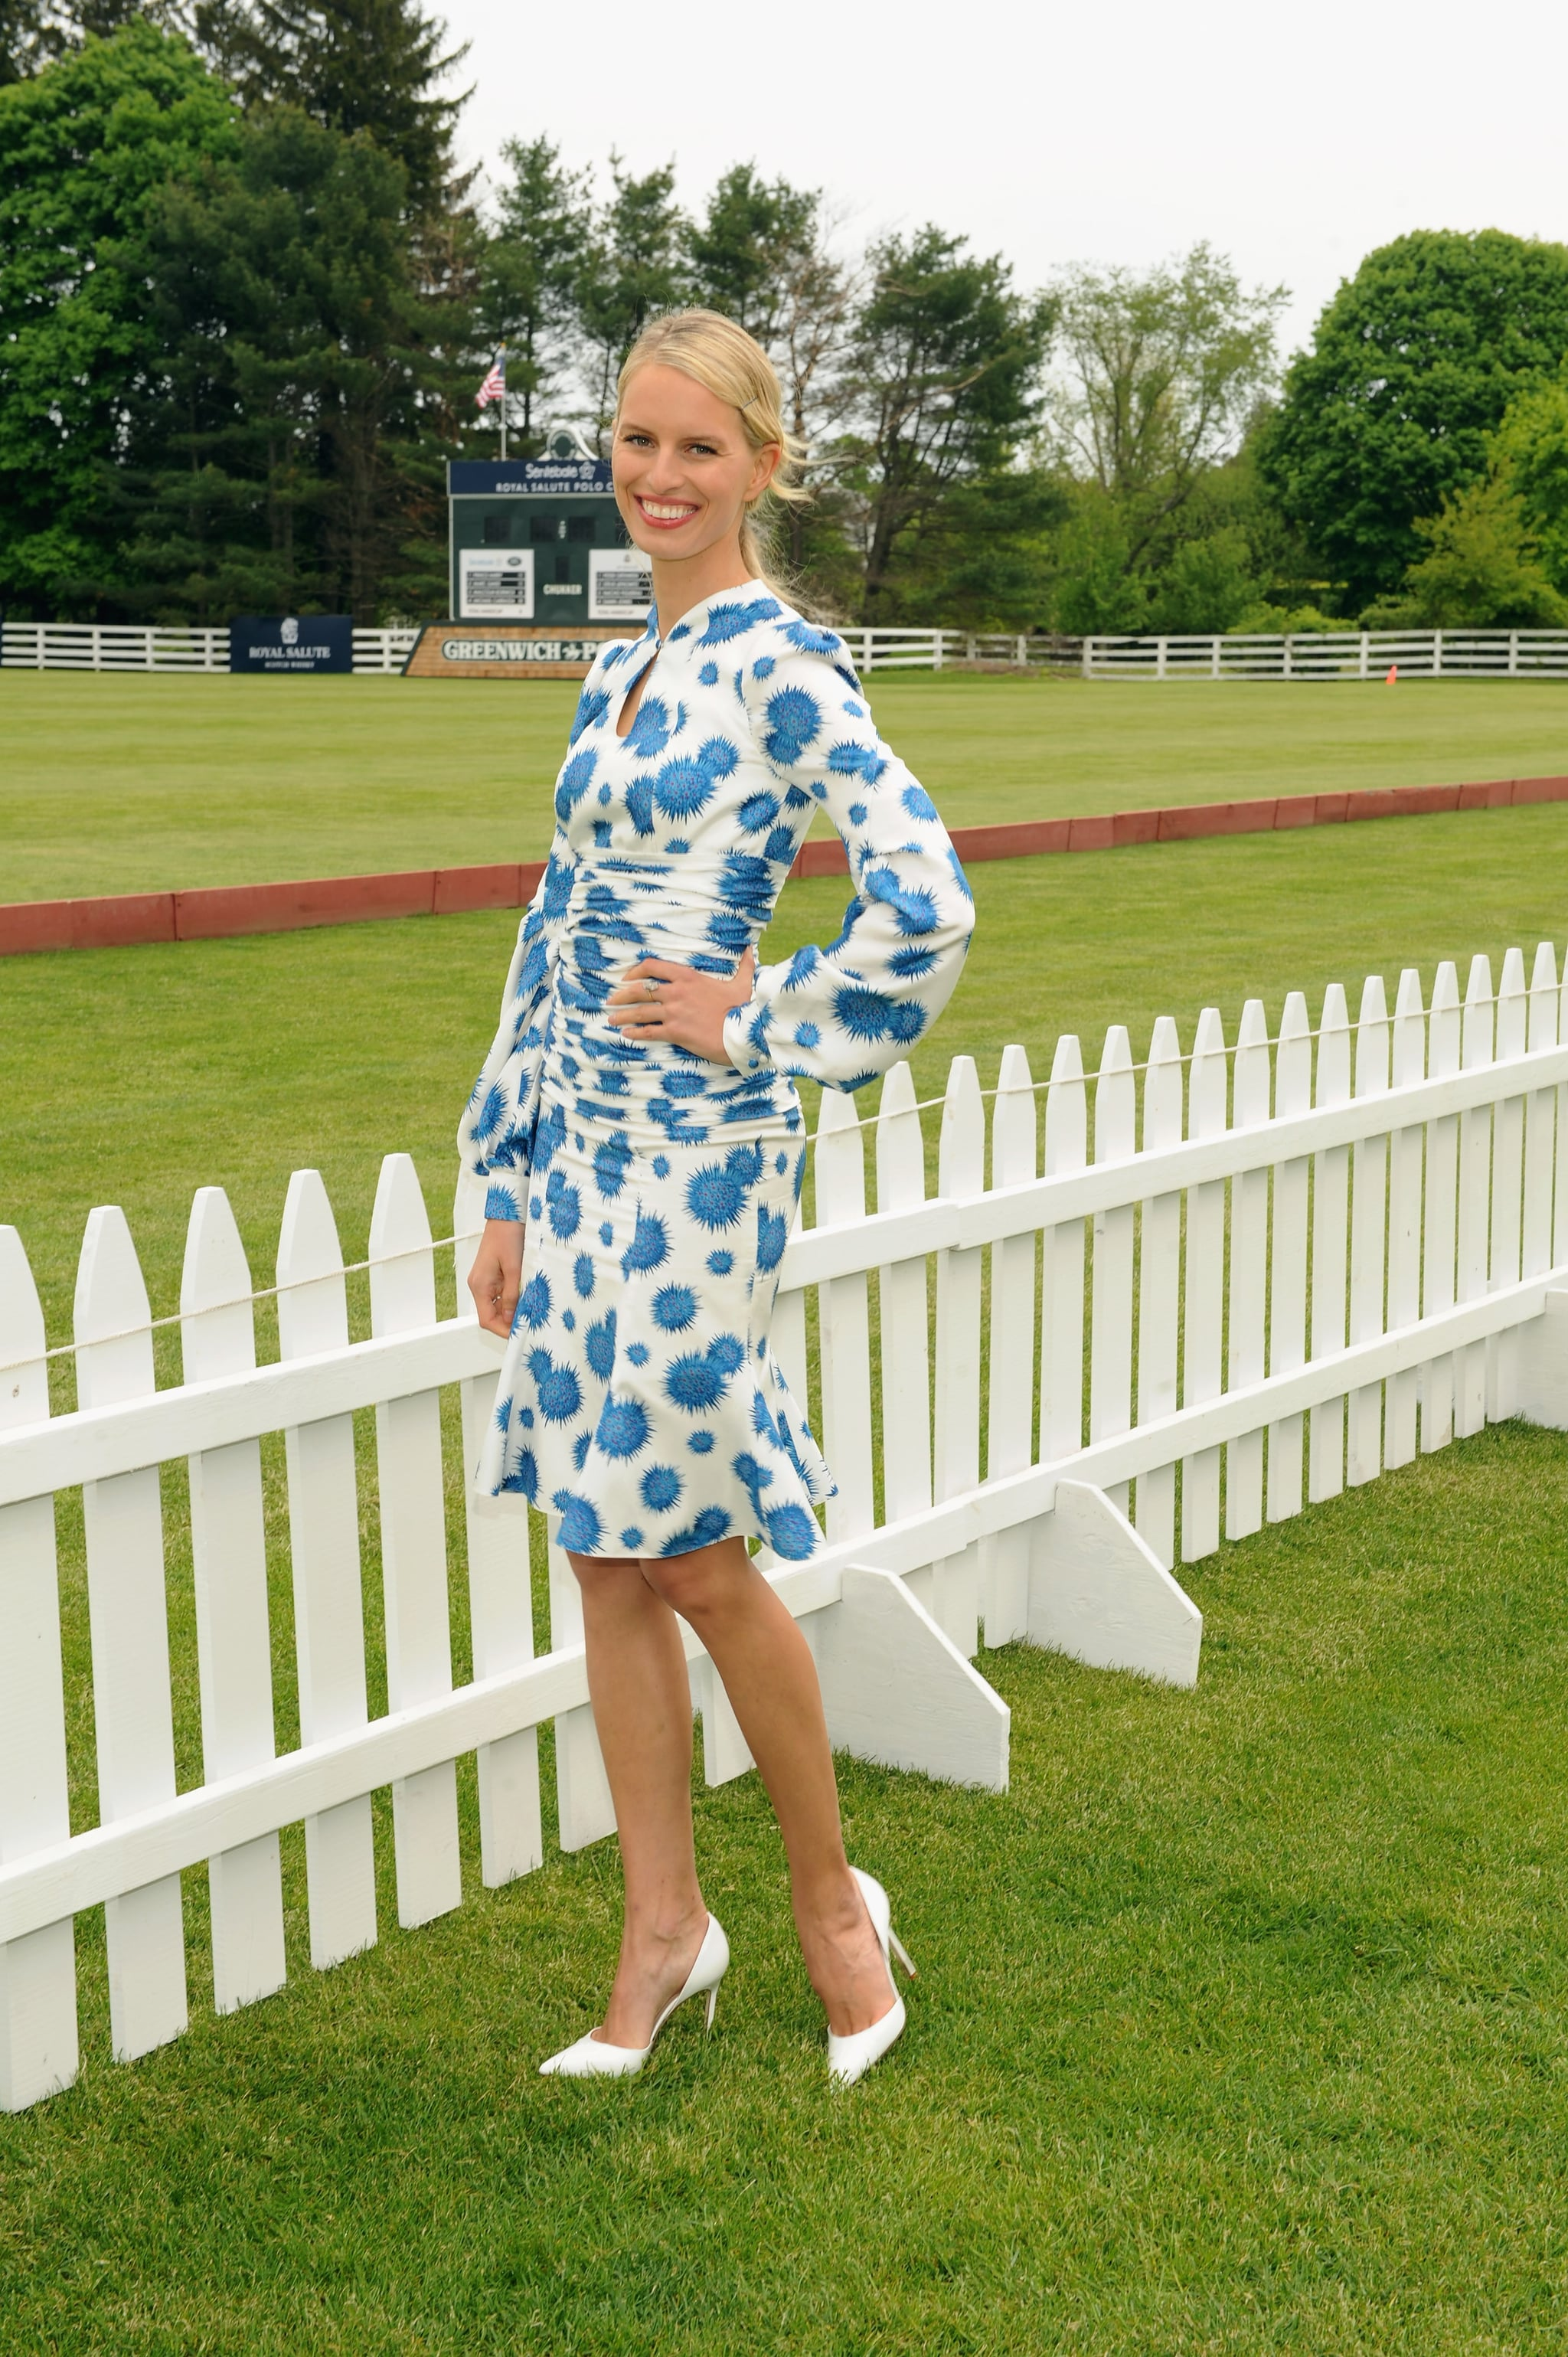 Karolina Kurkova matched a blue-and-white floral dress with clean white pumps at the 2013 Sentebale Royal Salute Polo Cup in Greenwich.